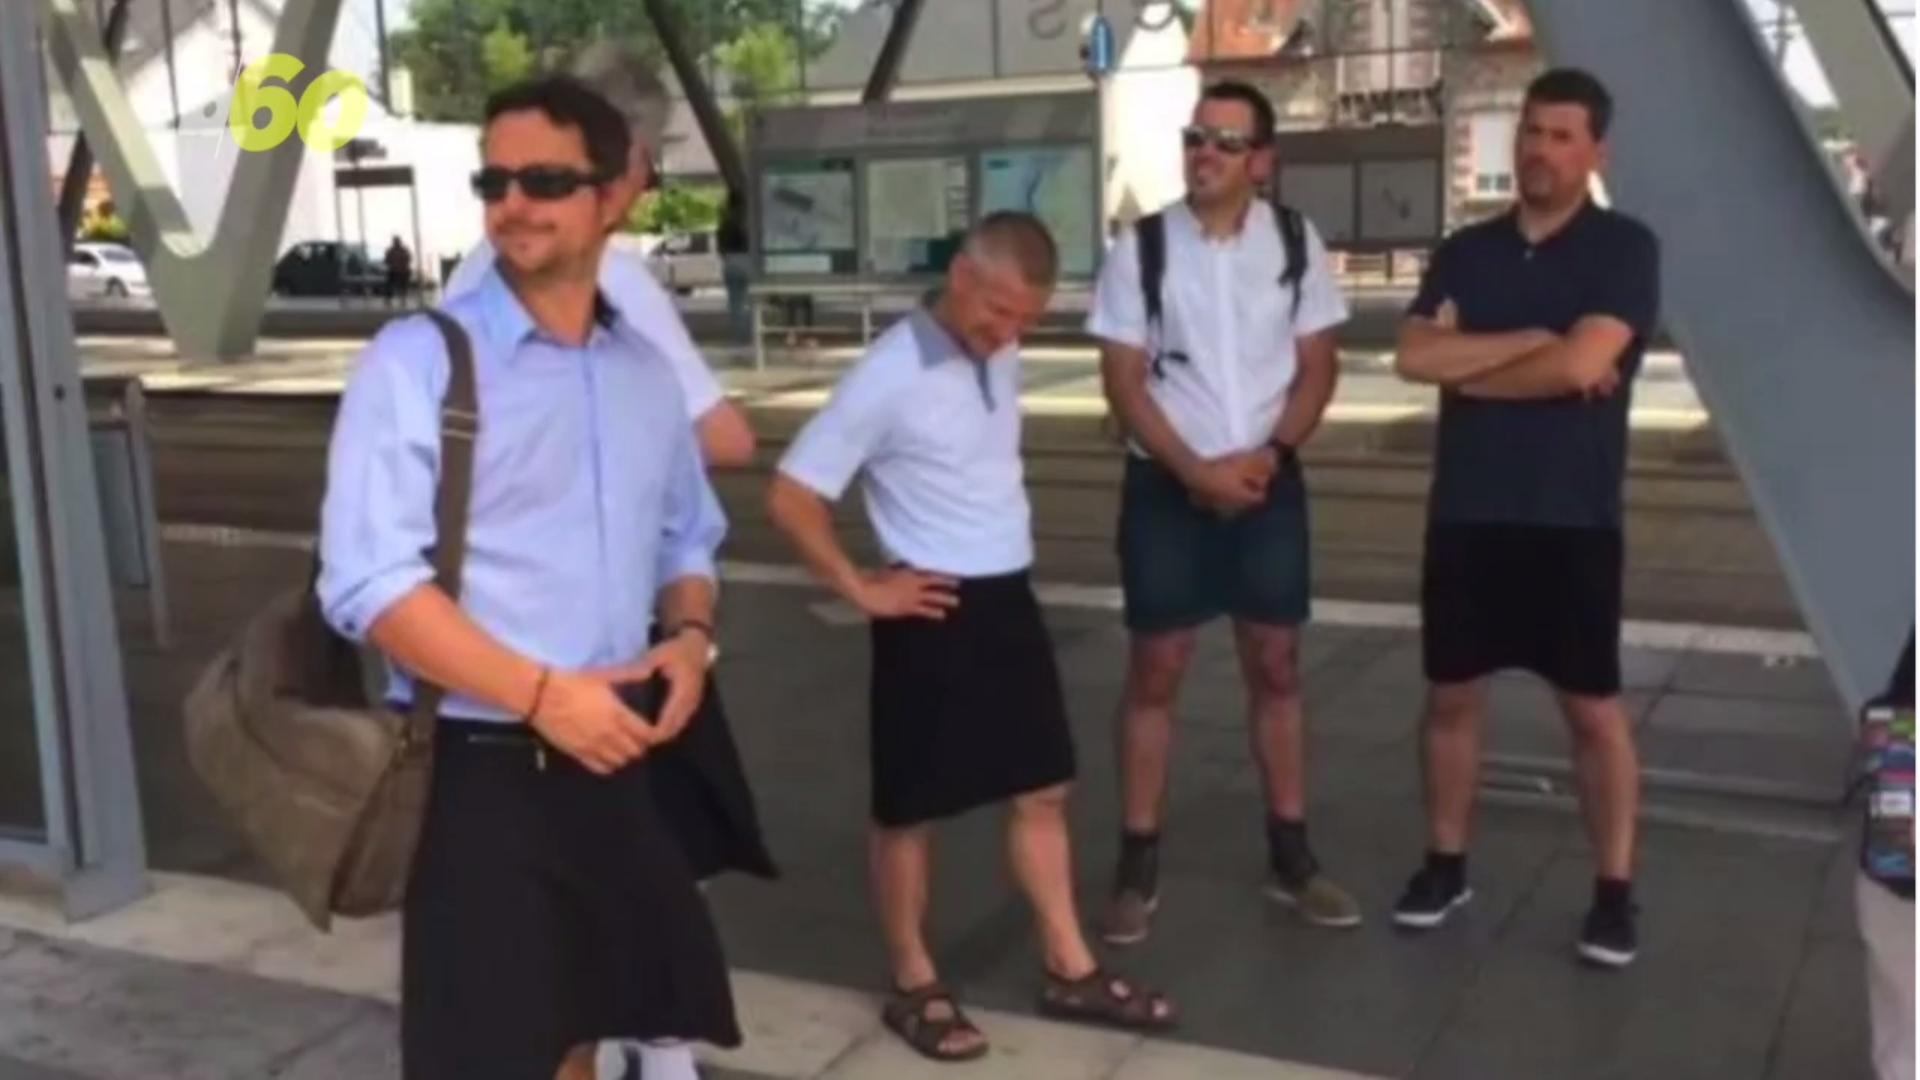 Why Men Who Are Banned From Wearing Shorts are Wearing Skirts Instead